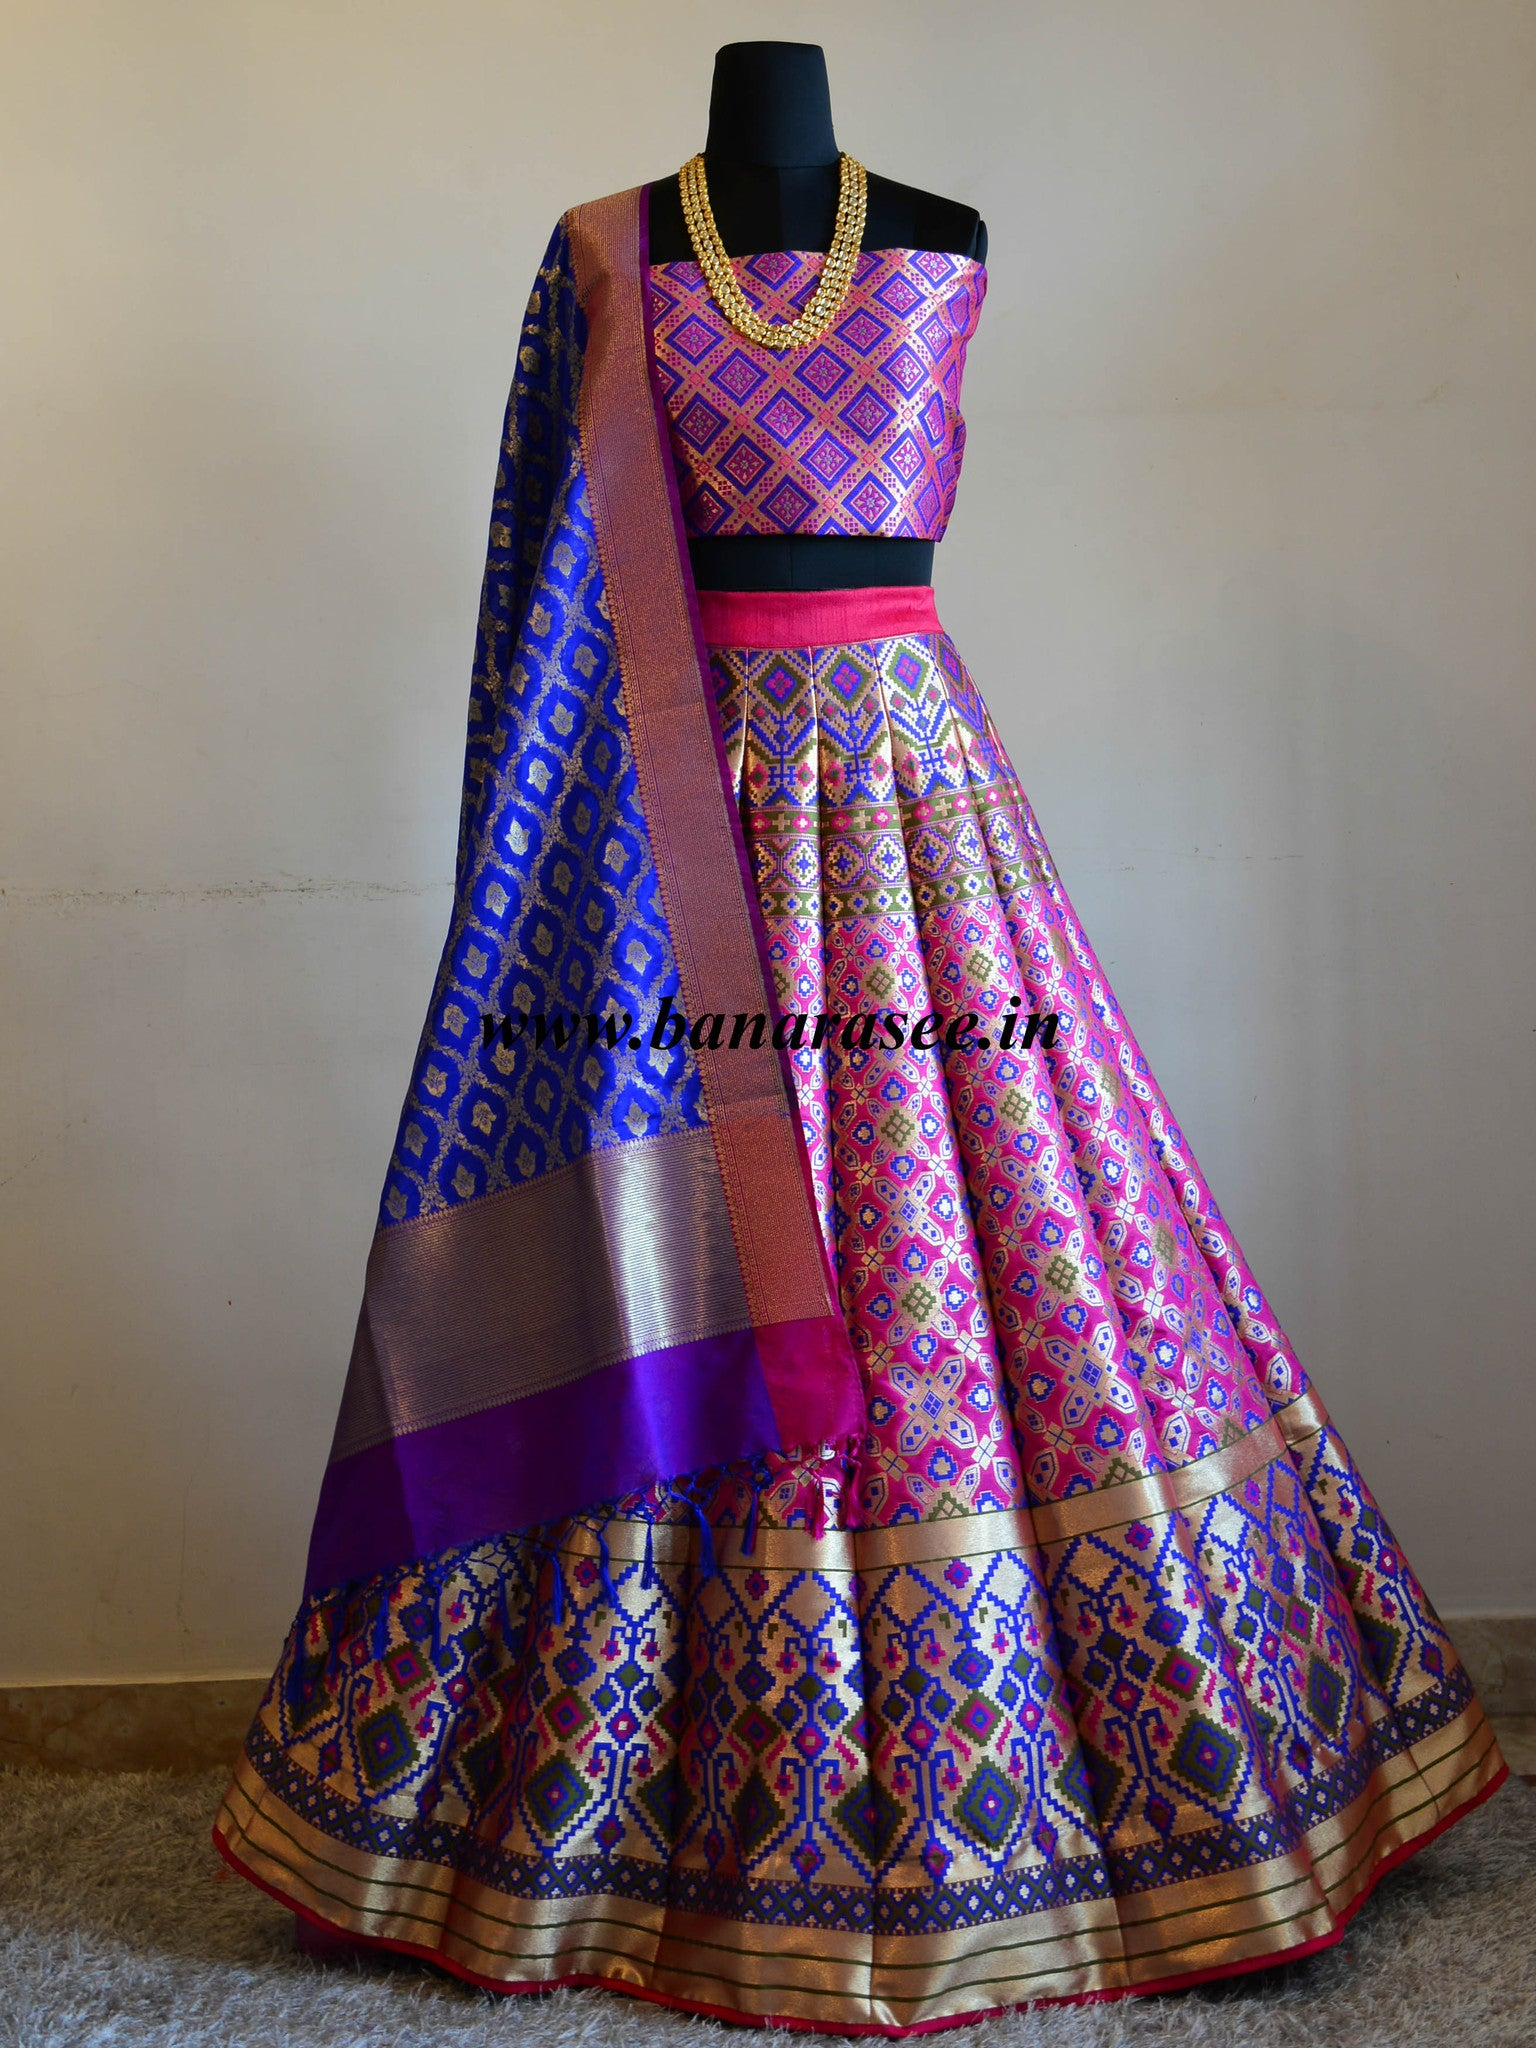 Banarasee Handwoven Art Silk Unstitched Lehenga & Blouse Fabric With Woven Meena Design-Hot Pink